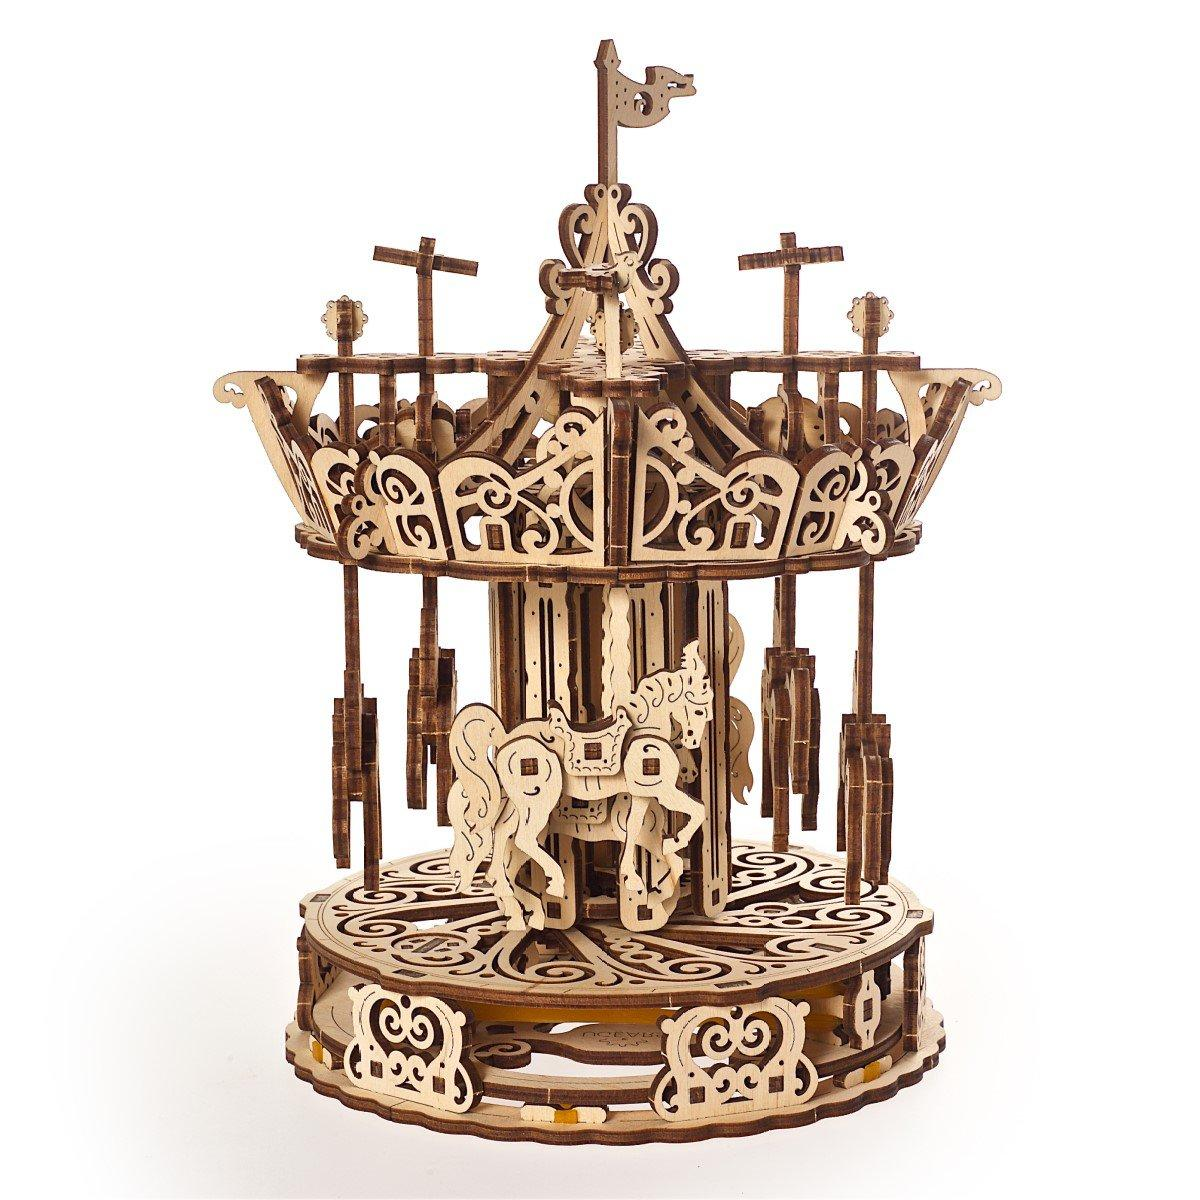 UGears Wooden Model Kits: Want To Feel Like A Child Again?